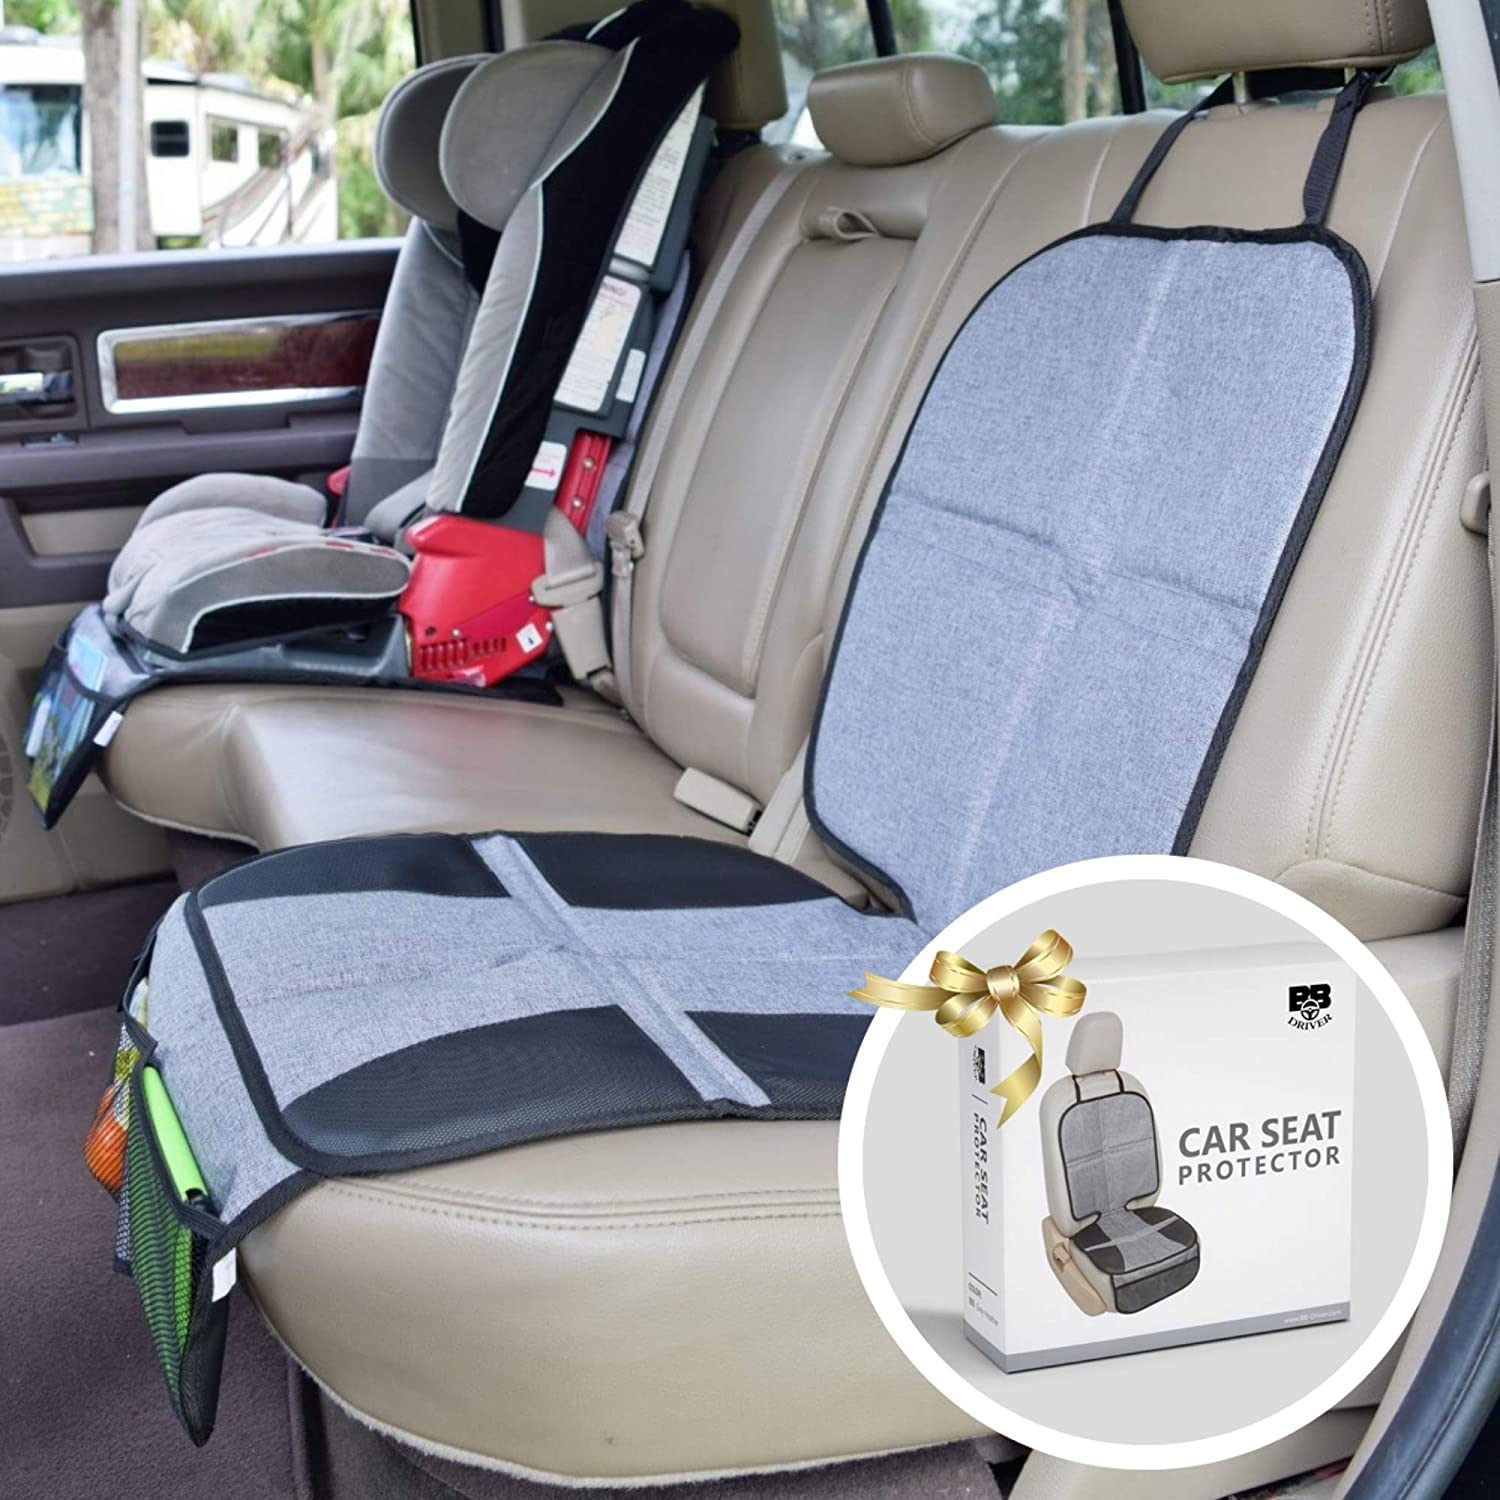 BB Driver Car Seat Protector for Child